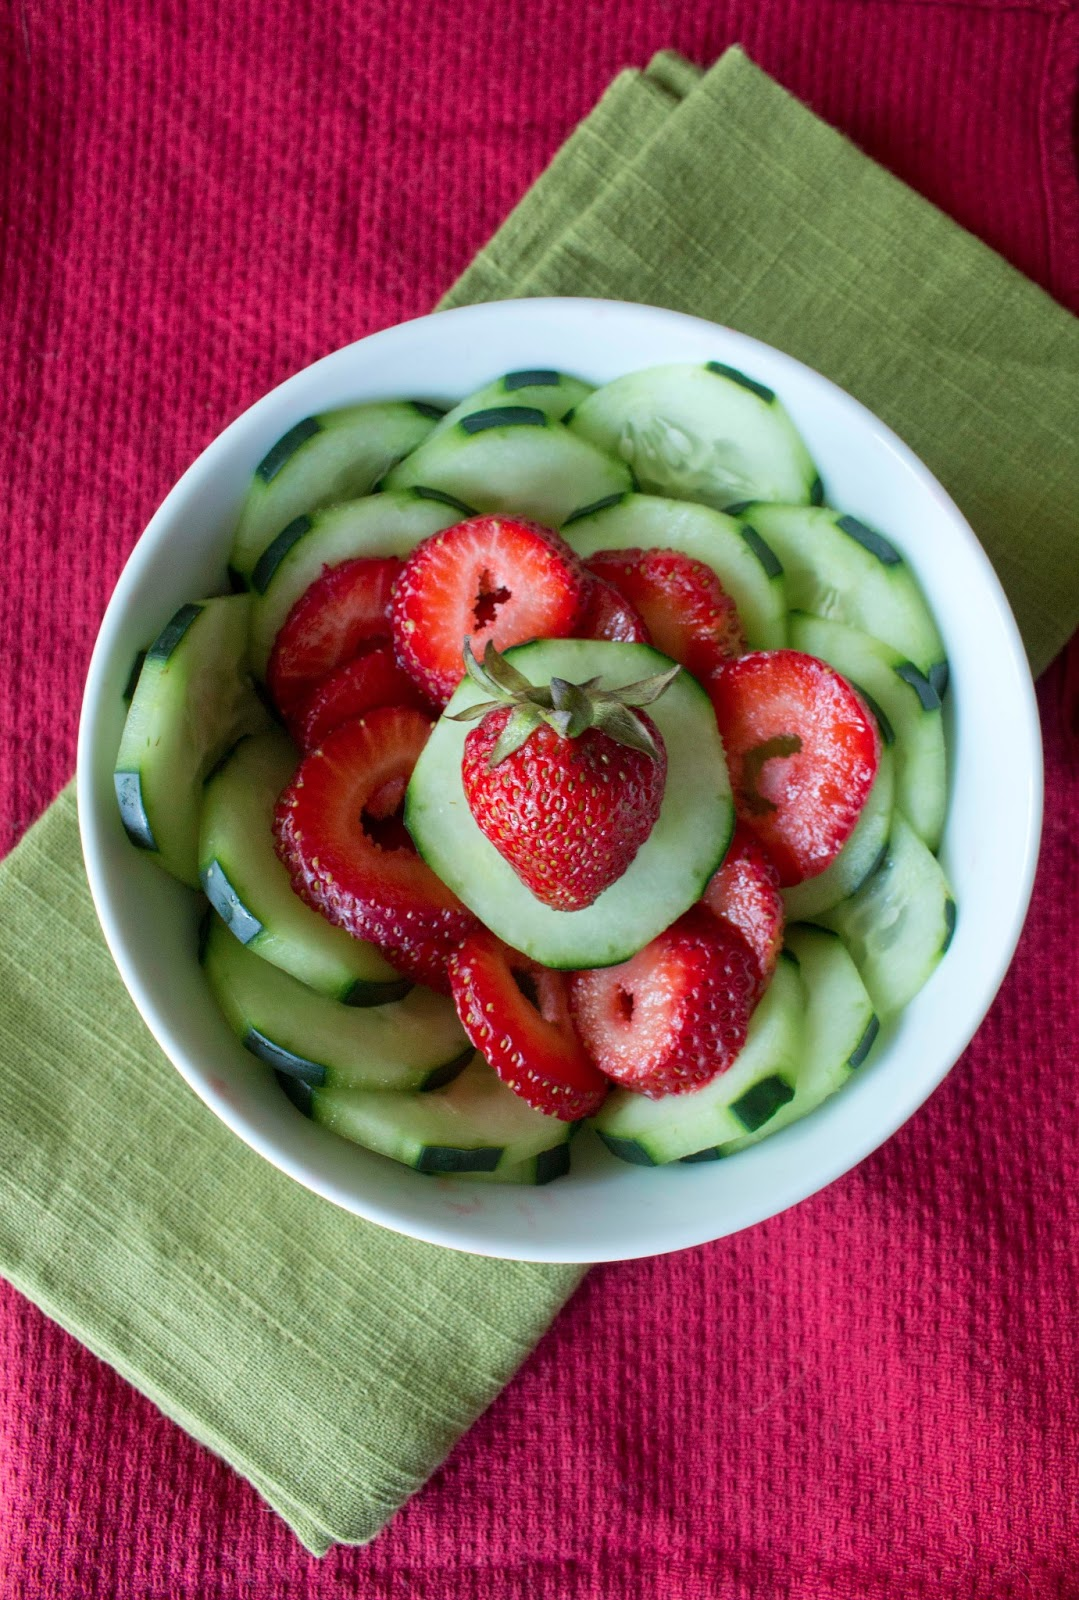 Cucumber Strawberry Salad with Honey and Balsamic Vinegar Dressing